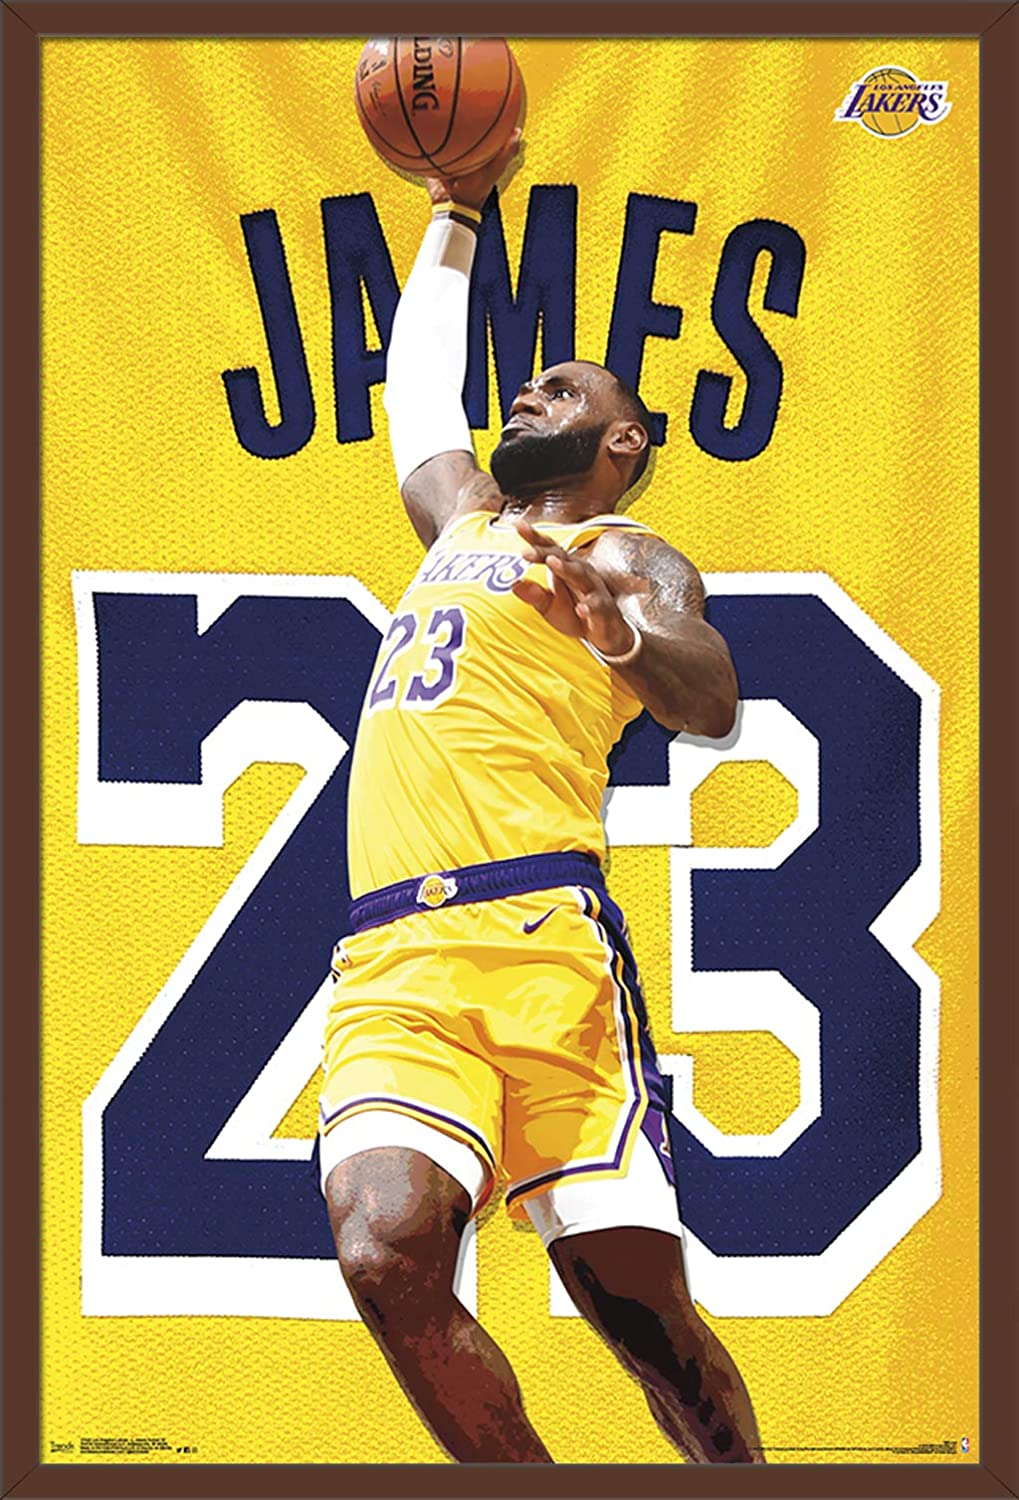 046c25cc475d4 Trends International Los Angeles Lakers - Lebron James Action Wall Poster,  22.375